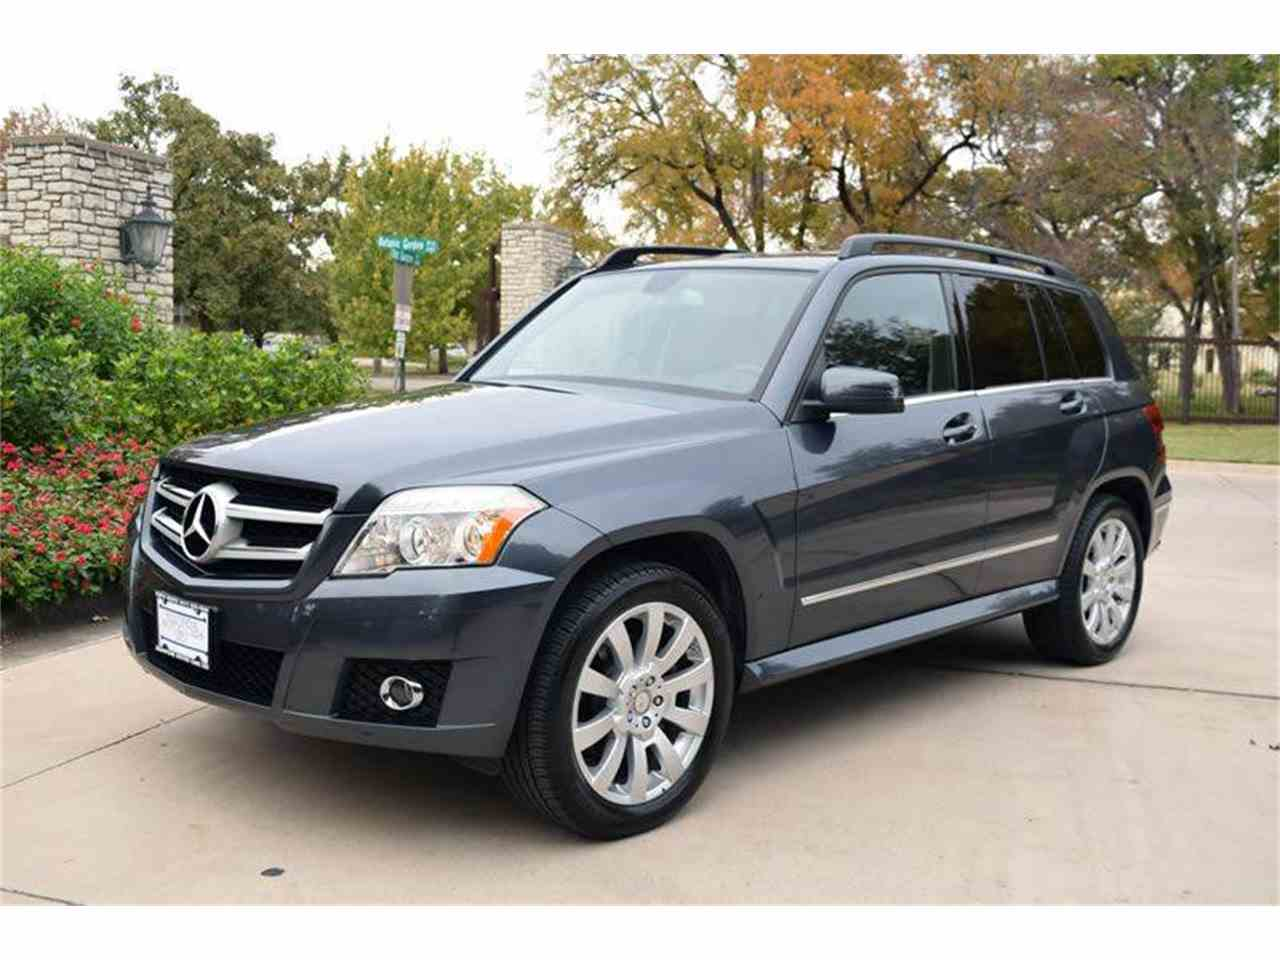 2010 mercedes benz glk350 for sale cc for 2010 mercedes benz glk350 for sale